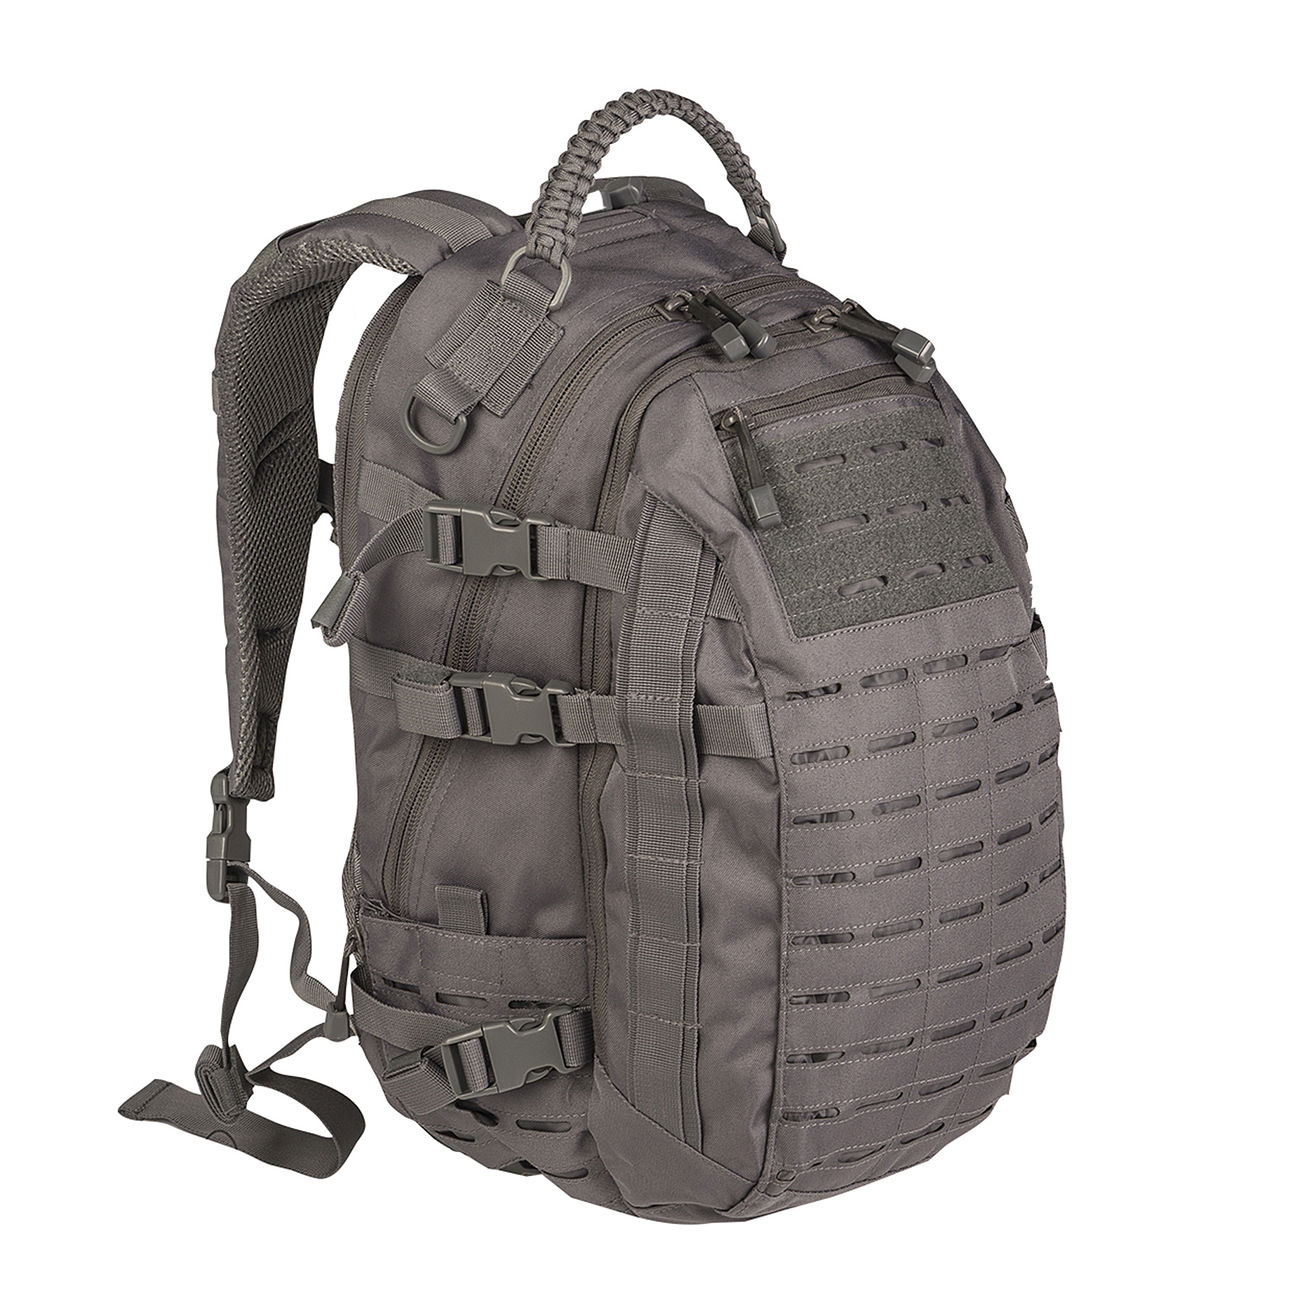 Mil-Tec Rucksack Mission Pack Laser Cut Large urban grey 0